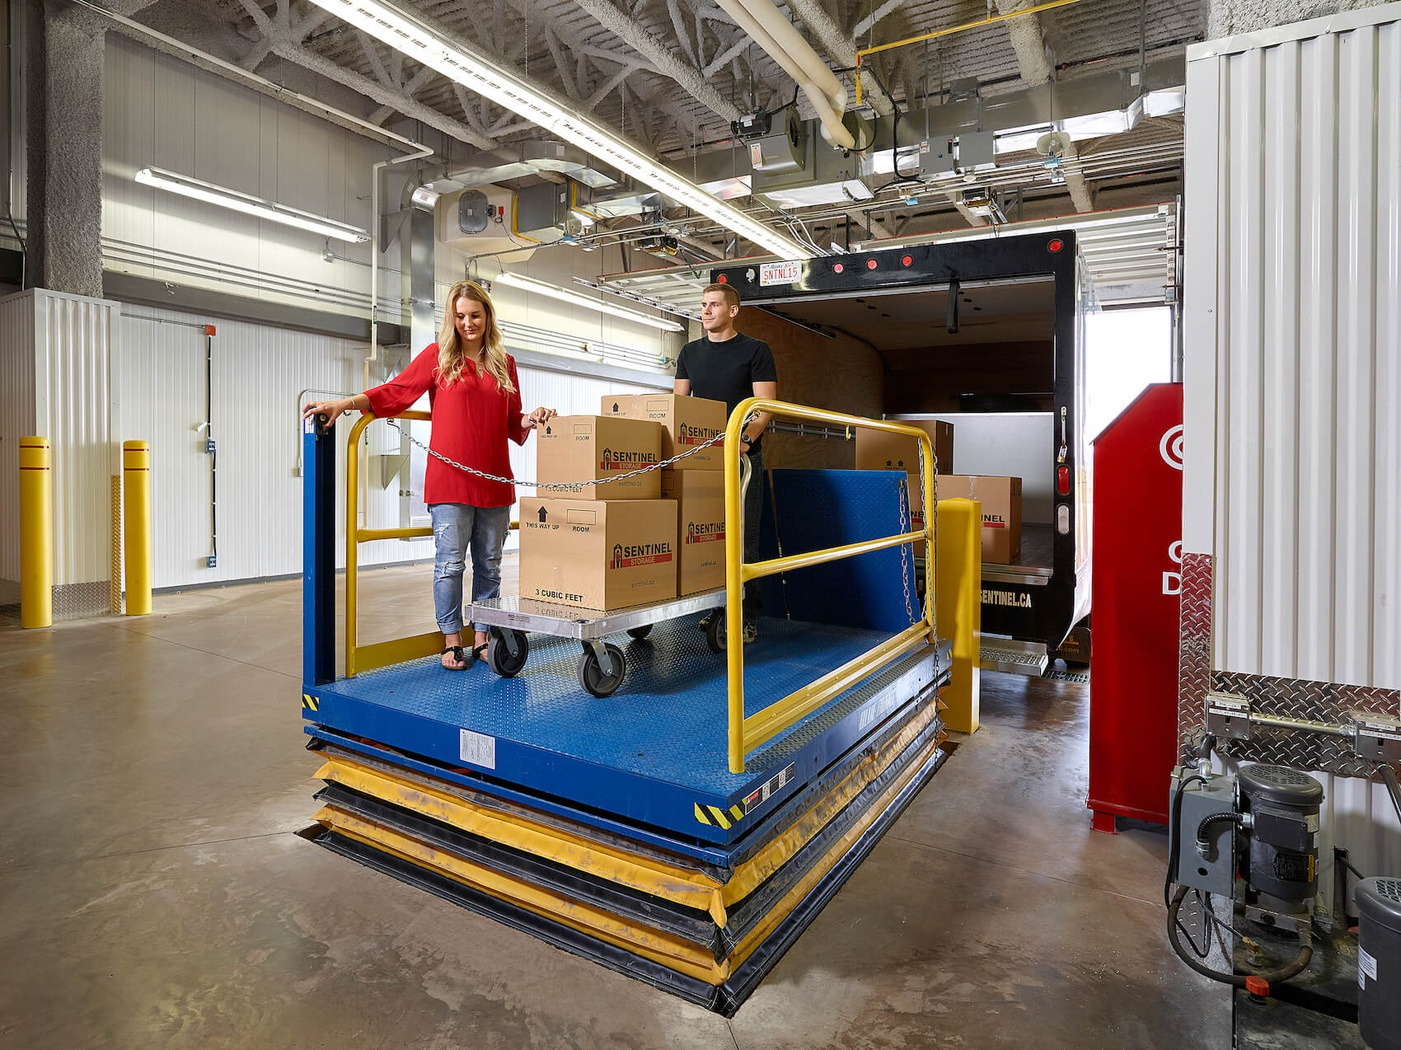 Rent Edmonton storage units at 6203 Andrews Loop Southwest. We offer a wide-range of affordable self storage units and your first 4 weeks are free!